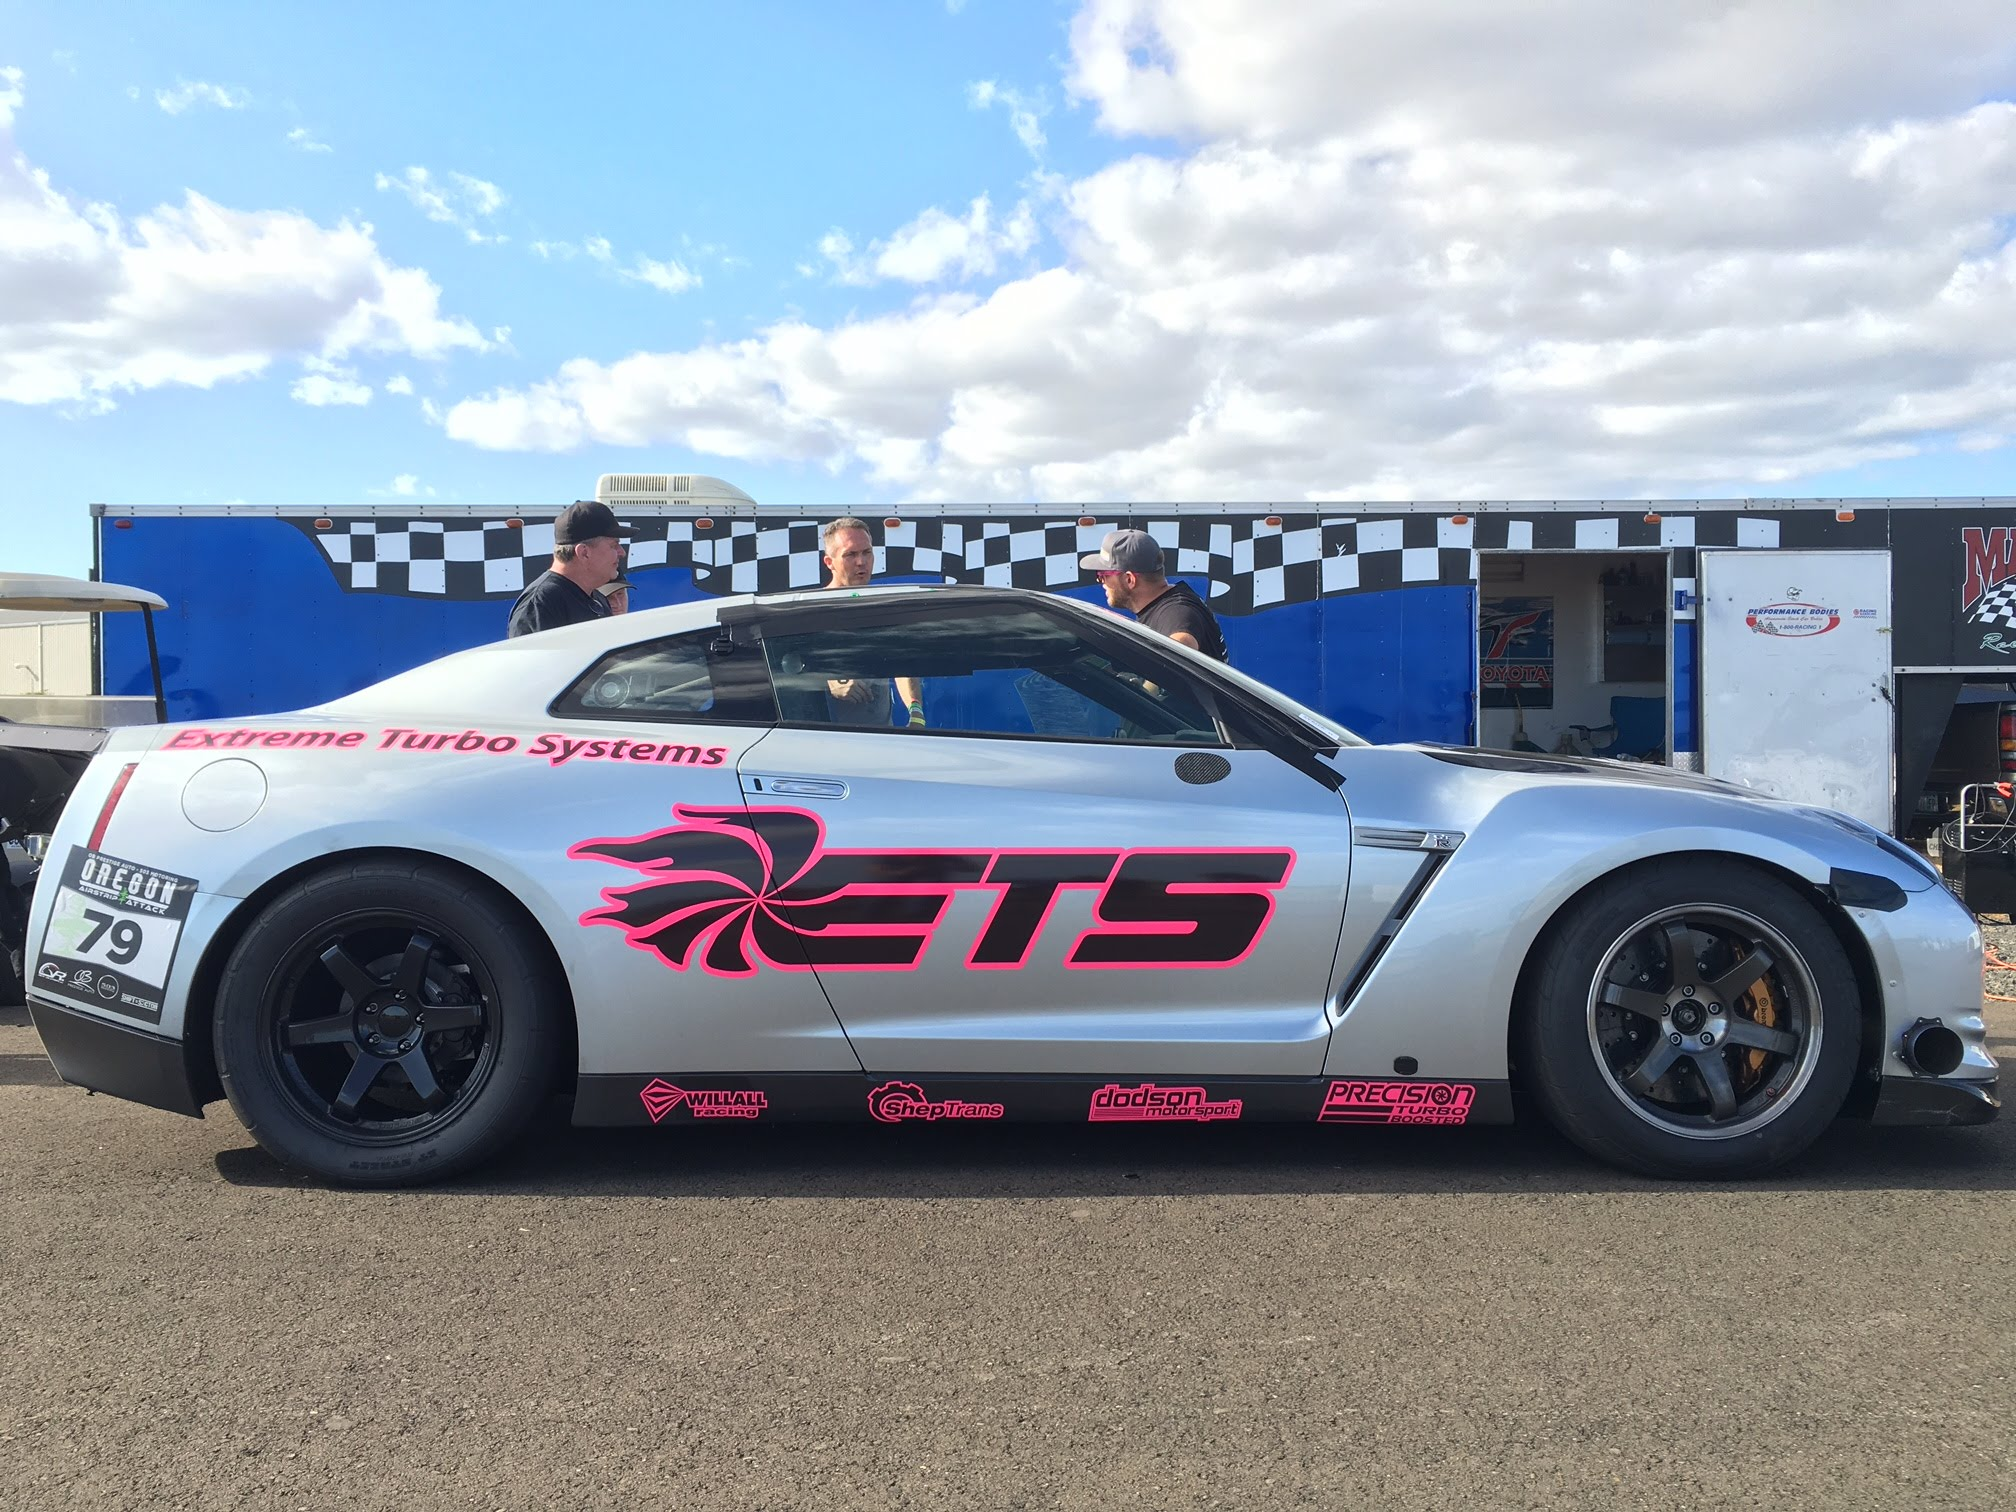 Step Aside Twin Turbo Lambo S The Ets Gtr Just Set A New